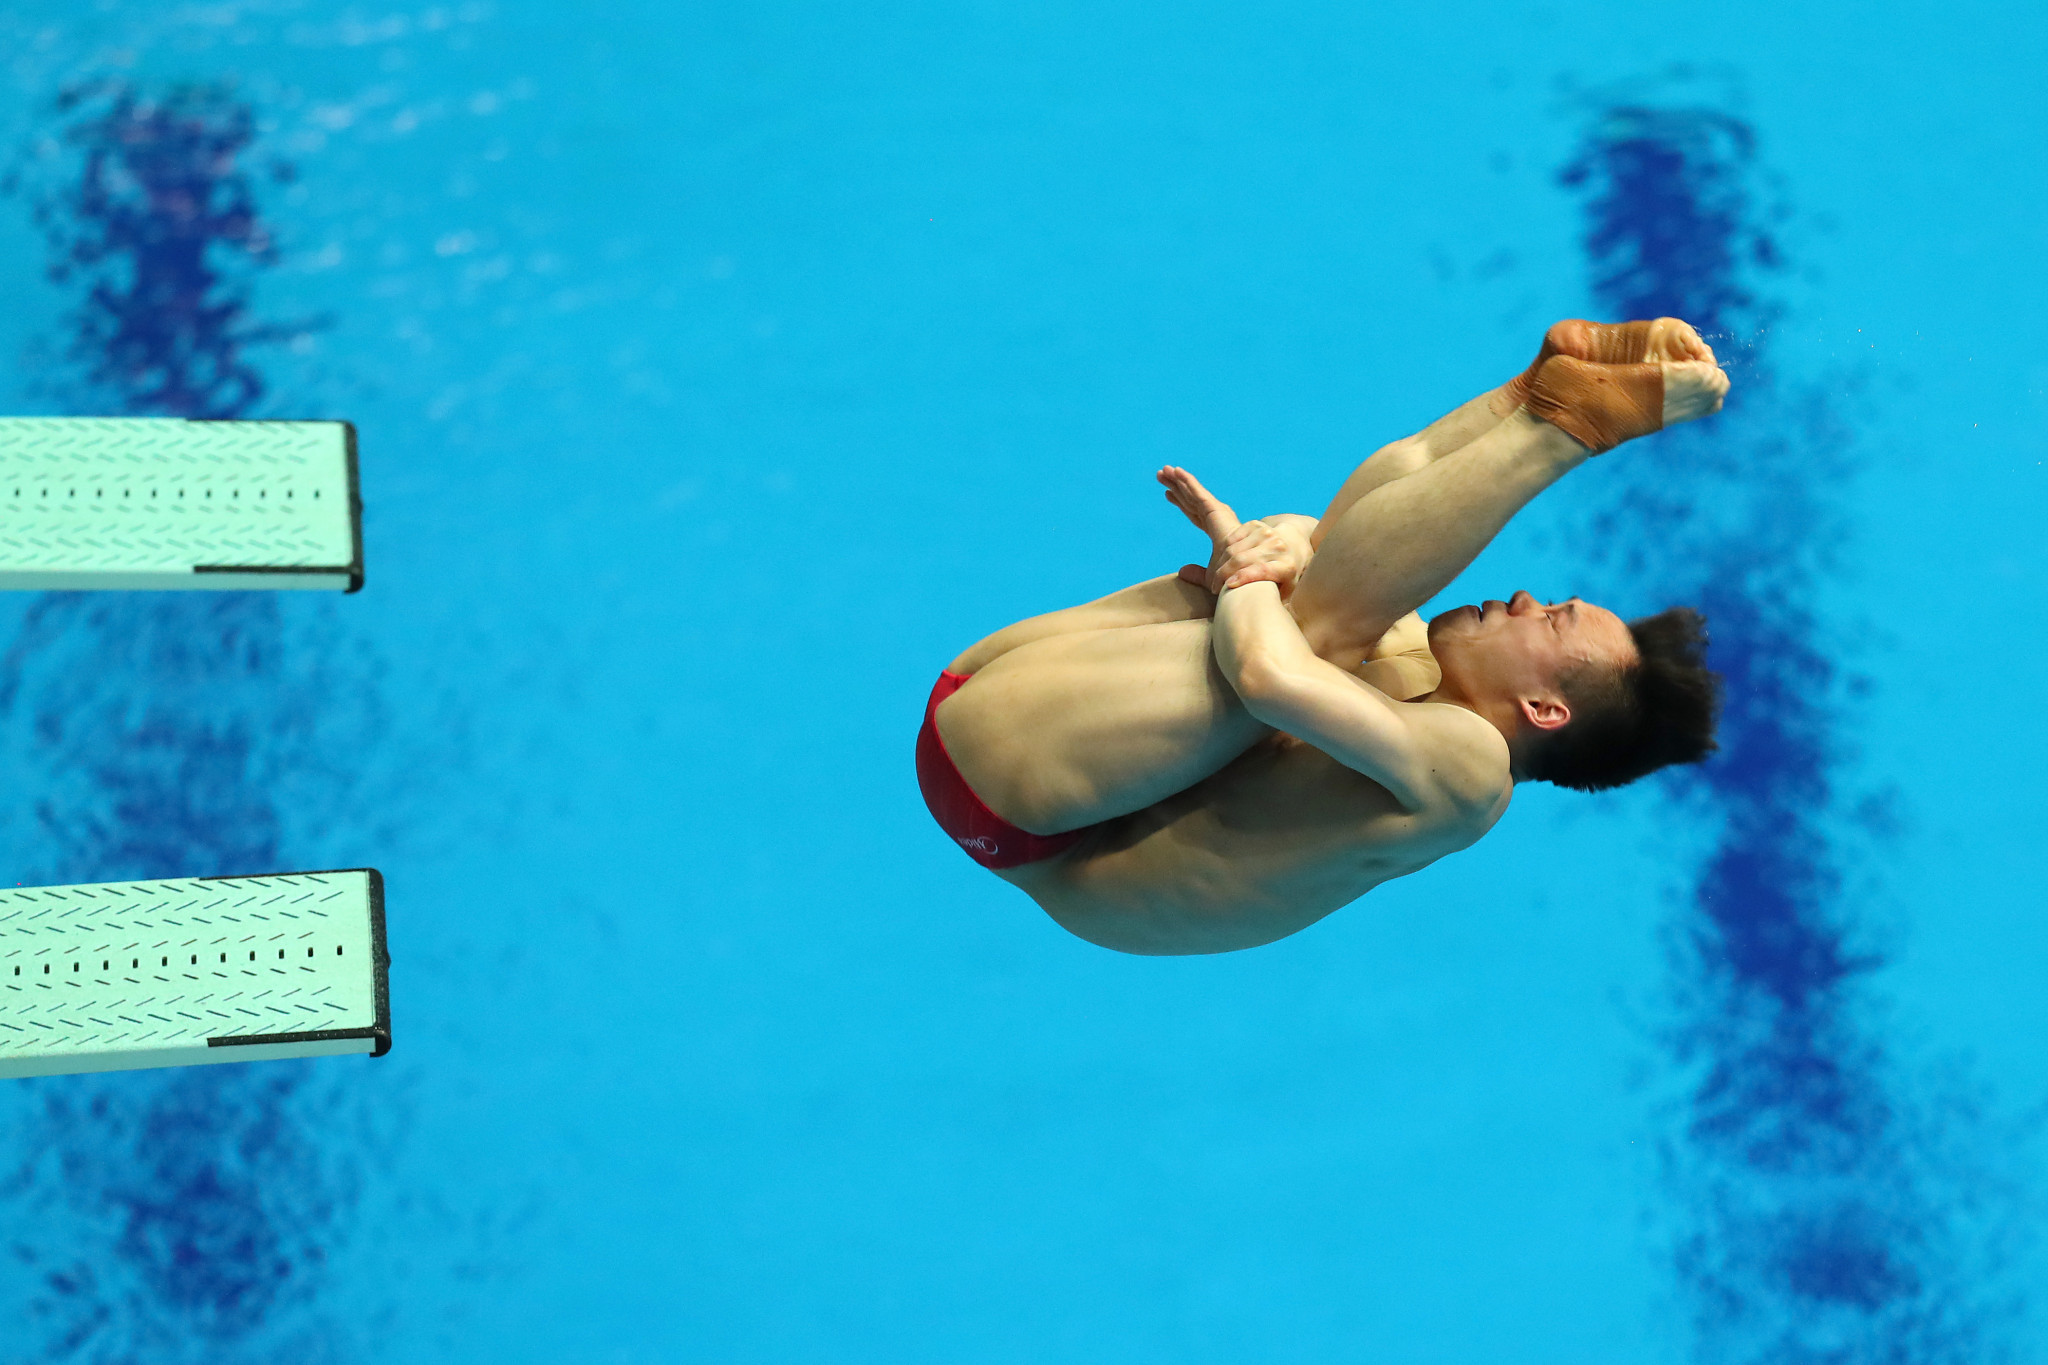 Xie Siyi won gold after a mistake by Britain's Jack Laugher to keep China's diving domination intact ©Getty Images